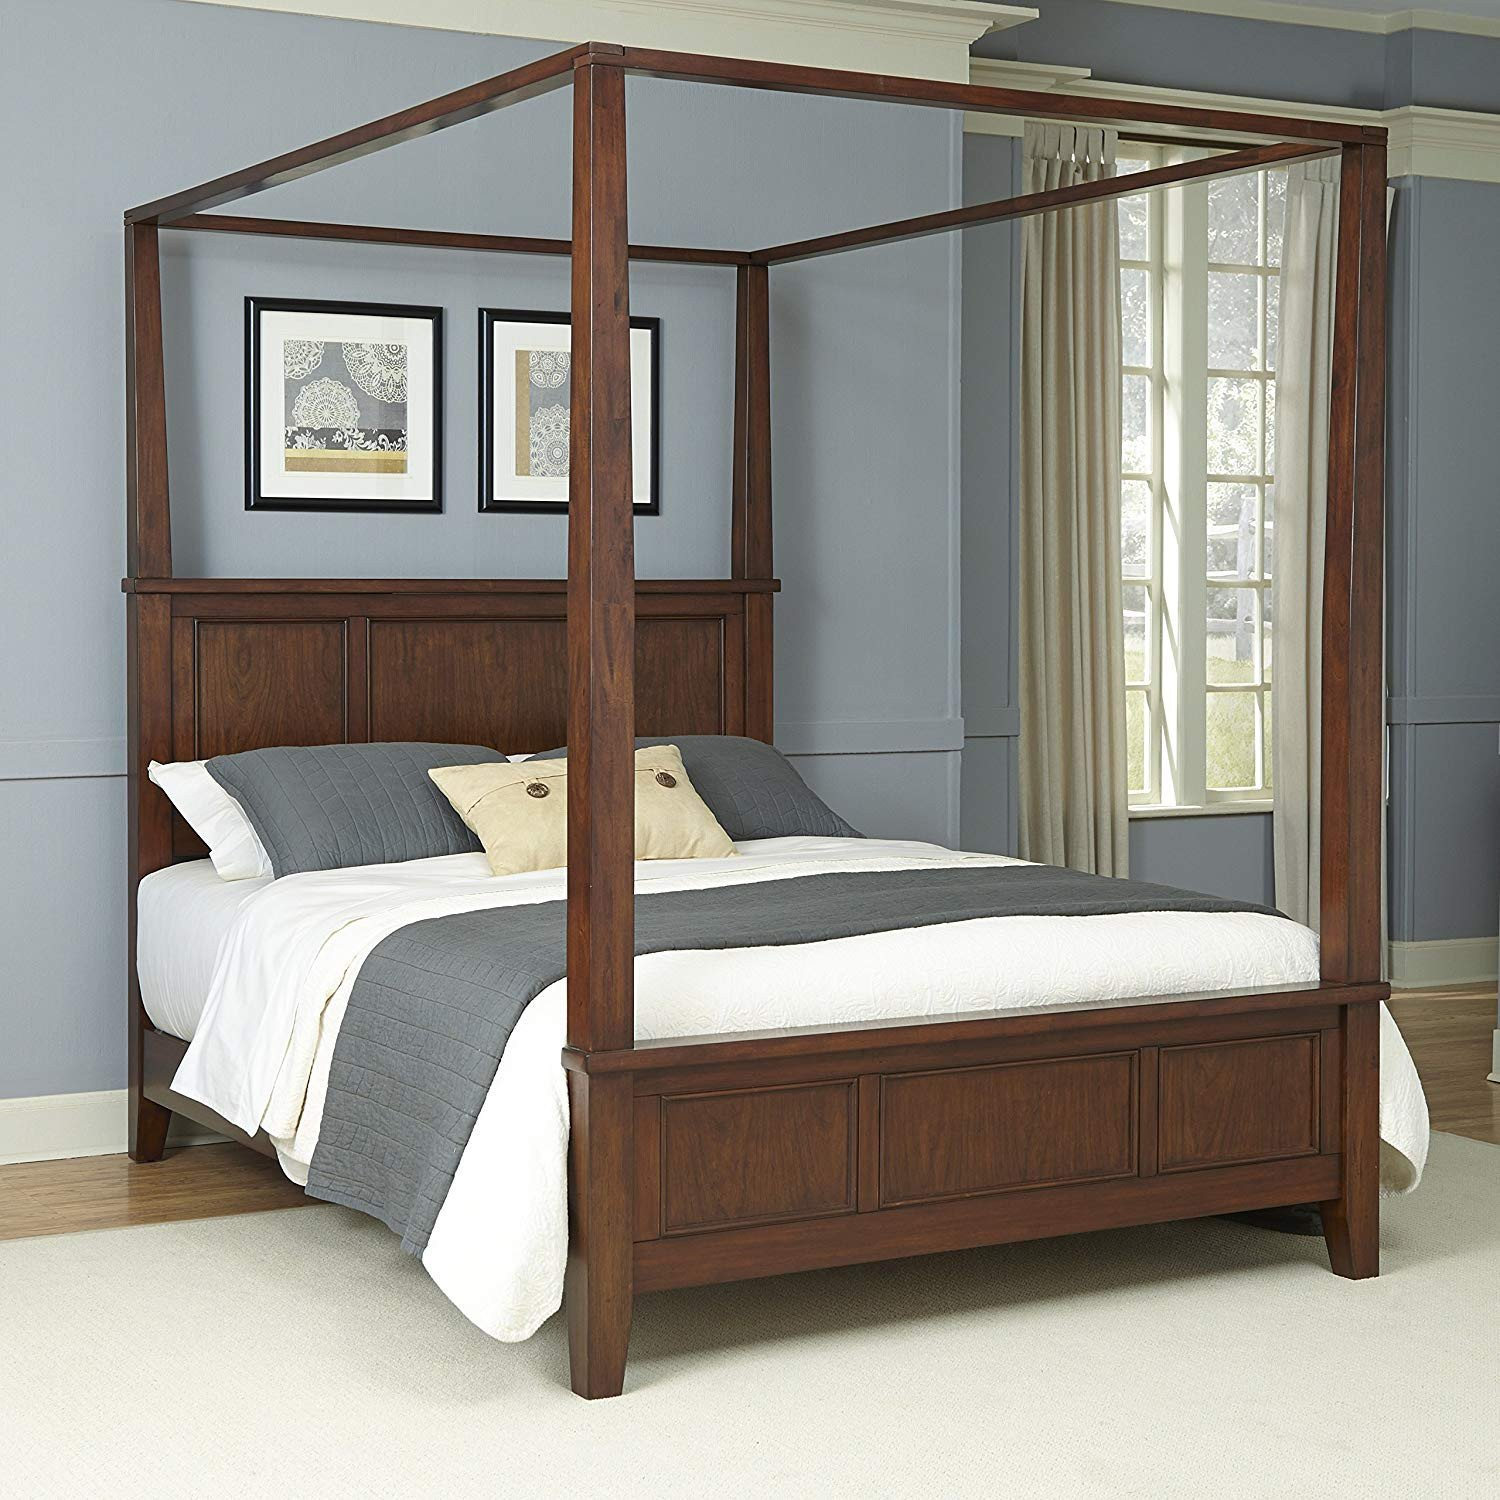 King Size Canopy Bedroom Set Awesome Amazon Chesapeake Classic Cherry King Canopy Bed and